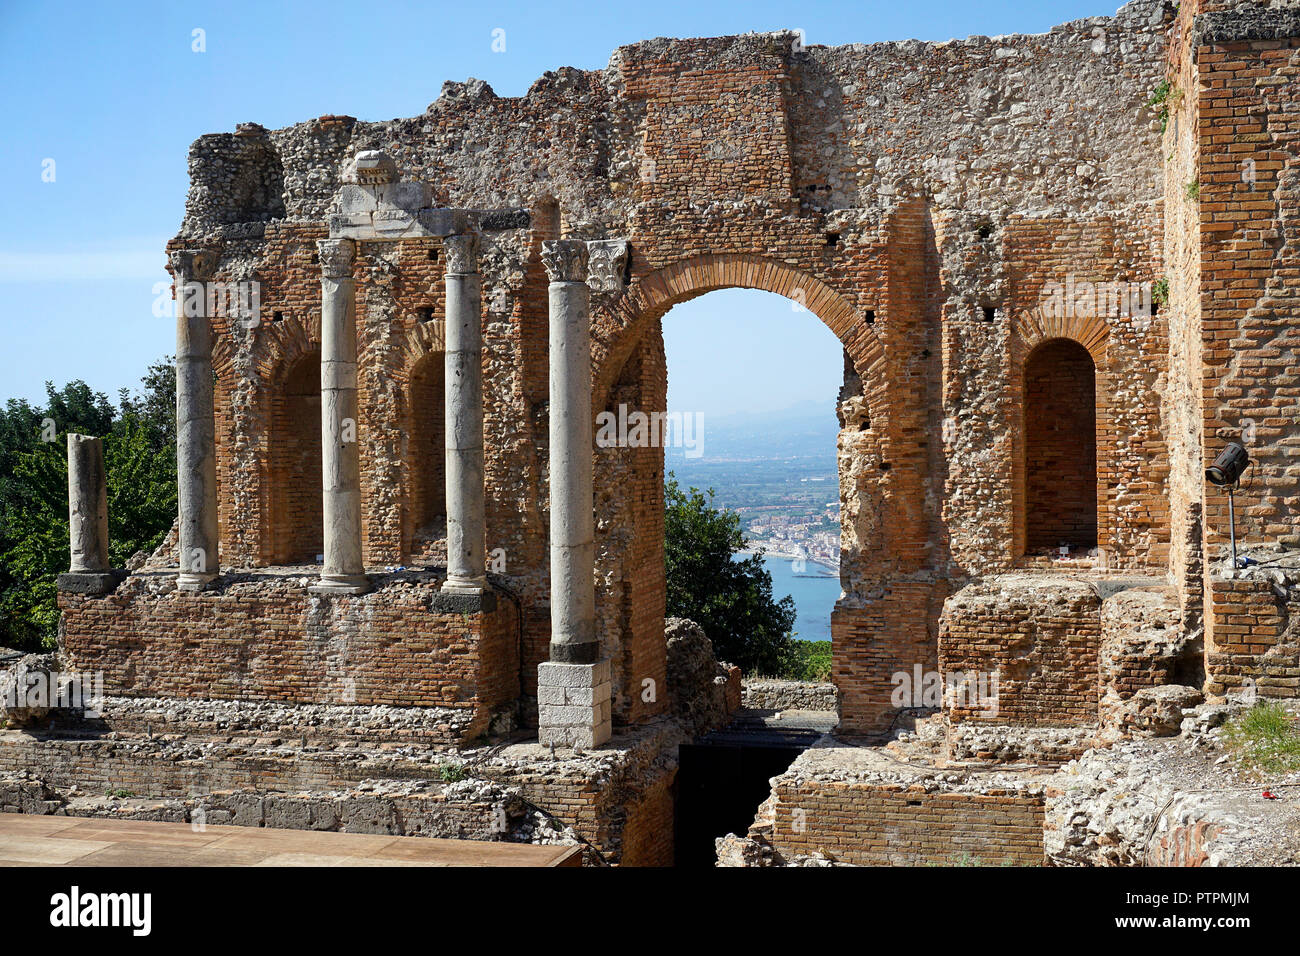 The ancient greek-roman theatre of Taormina, Sicily, Italy - Stock Image